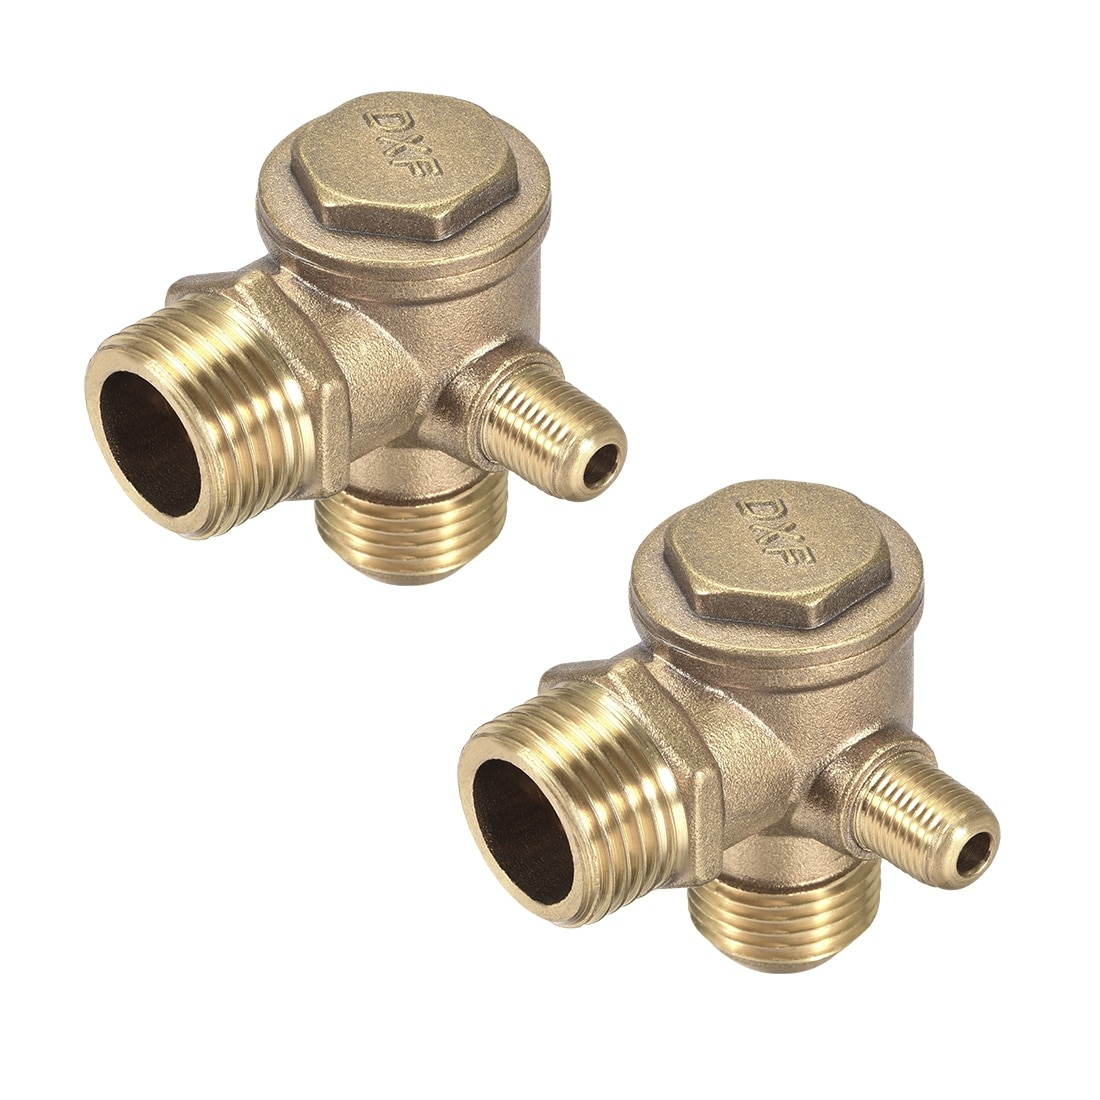 YINGJUN Valves Male Thread 90 Degree Brass Air Compressor Check Valve Spare Parts 201910mm Brass Check Valve